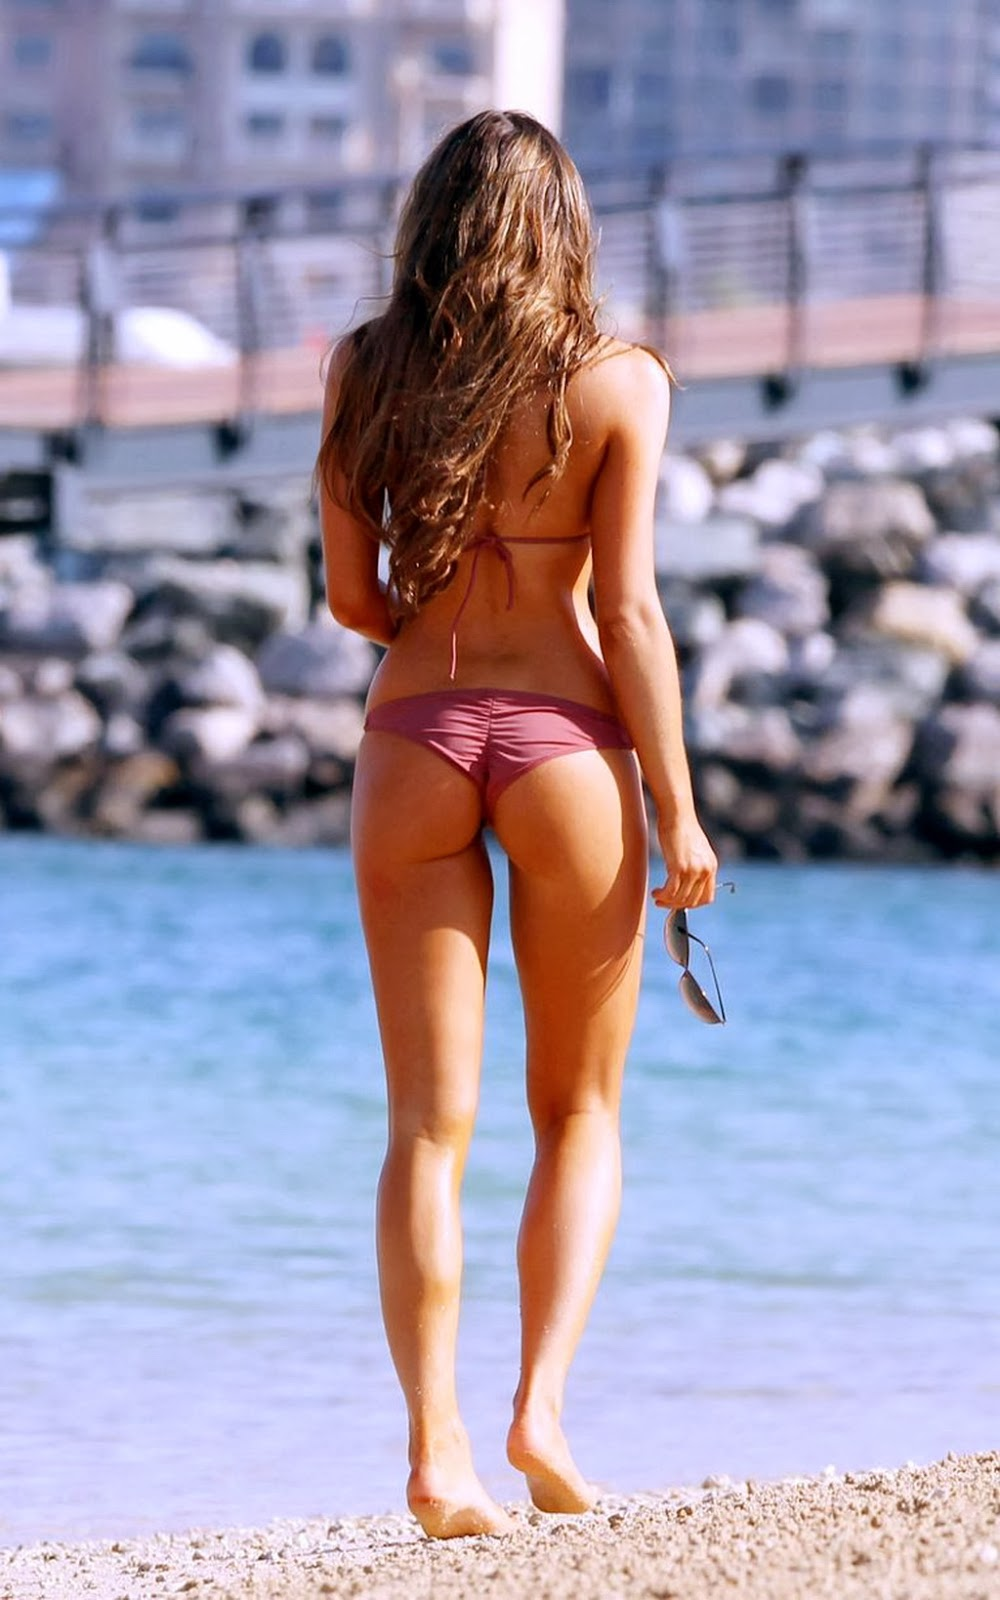 Luisa Zissman showing off her bikini body on a beach in Dubai